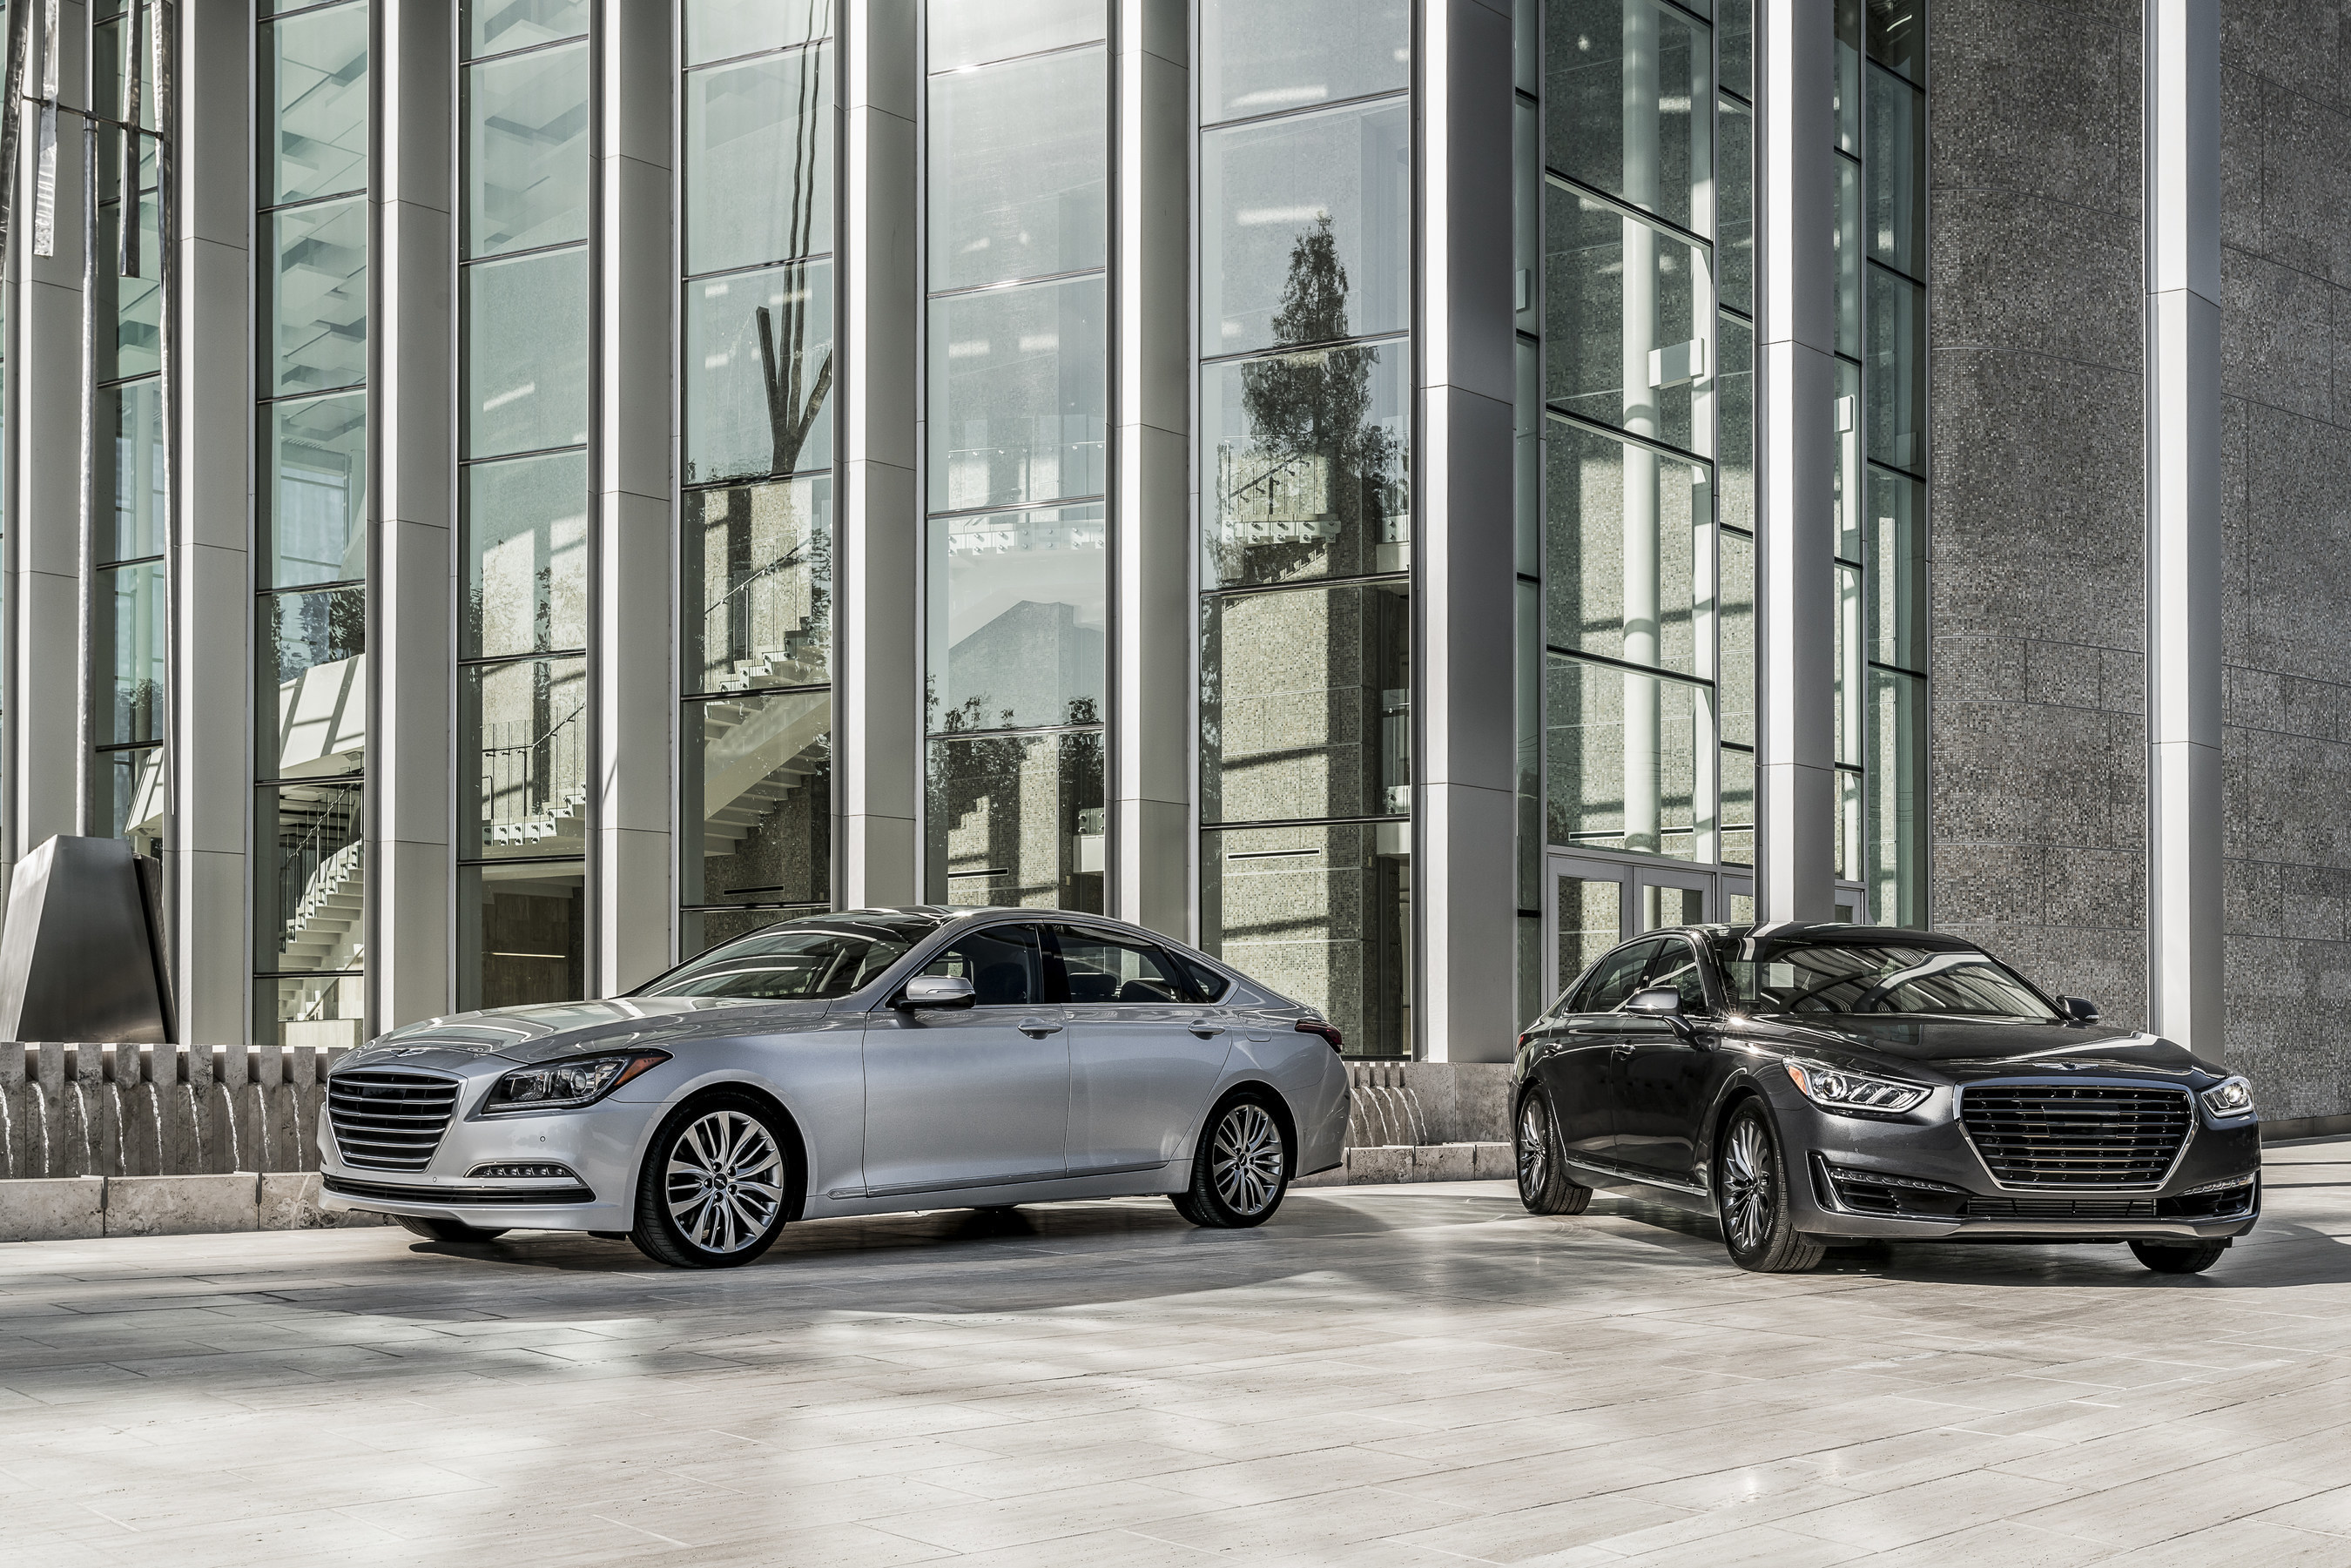 Genesis today announced pricing for the new 2017 Genesis G80 mid-luxury sedan, which offers the ultimate in refined performance, human-focused technology and first-class quality.